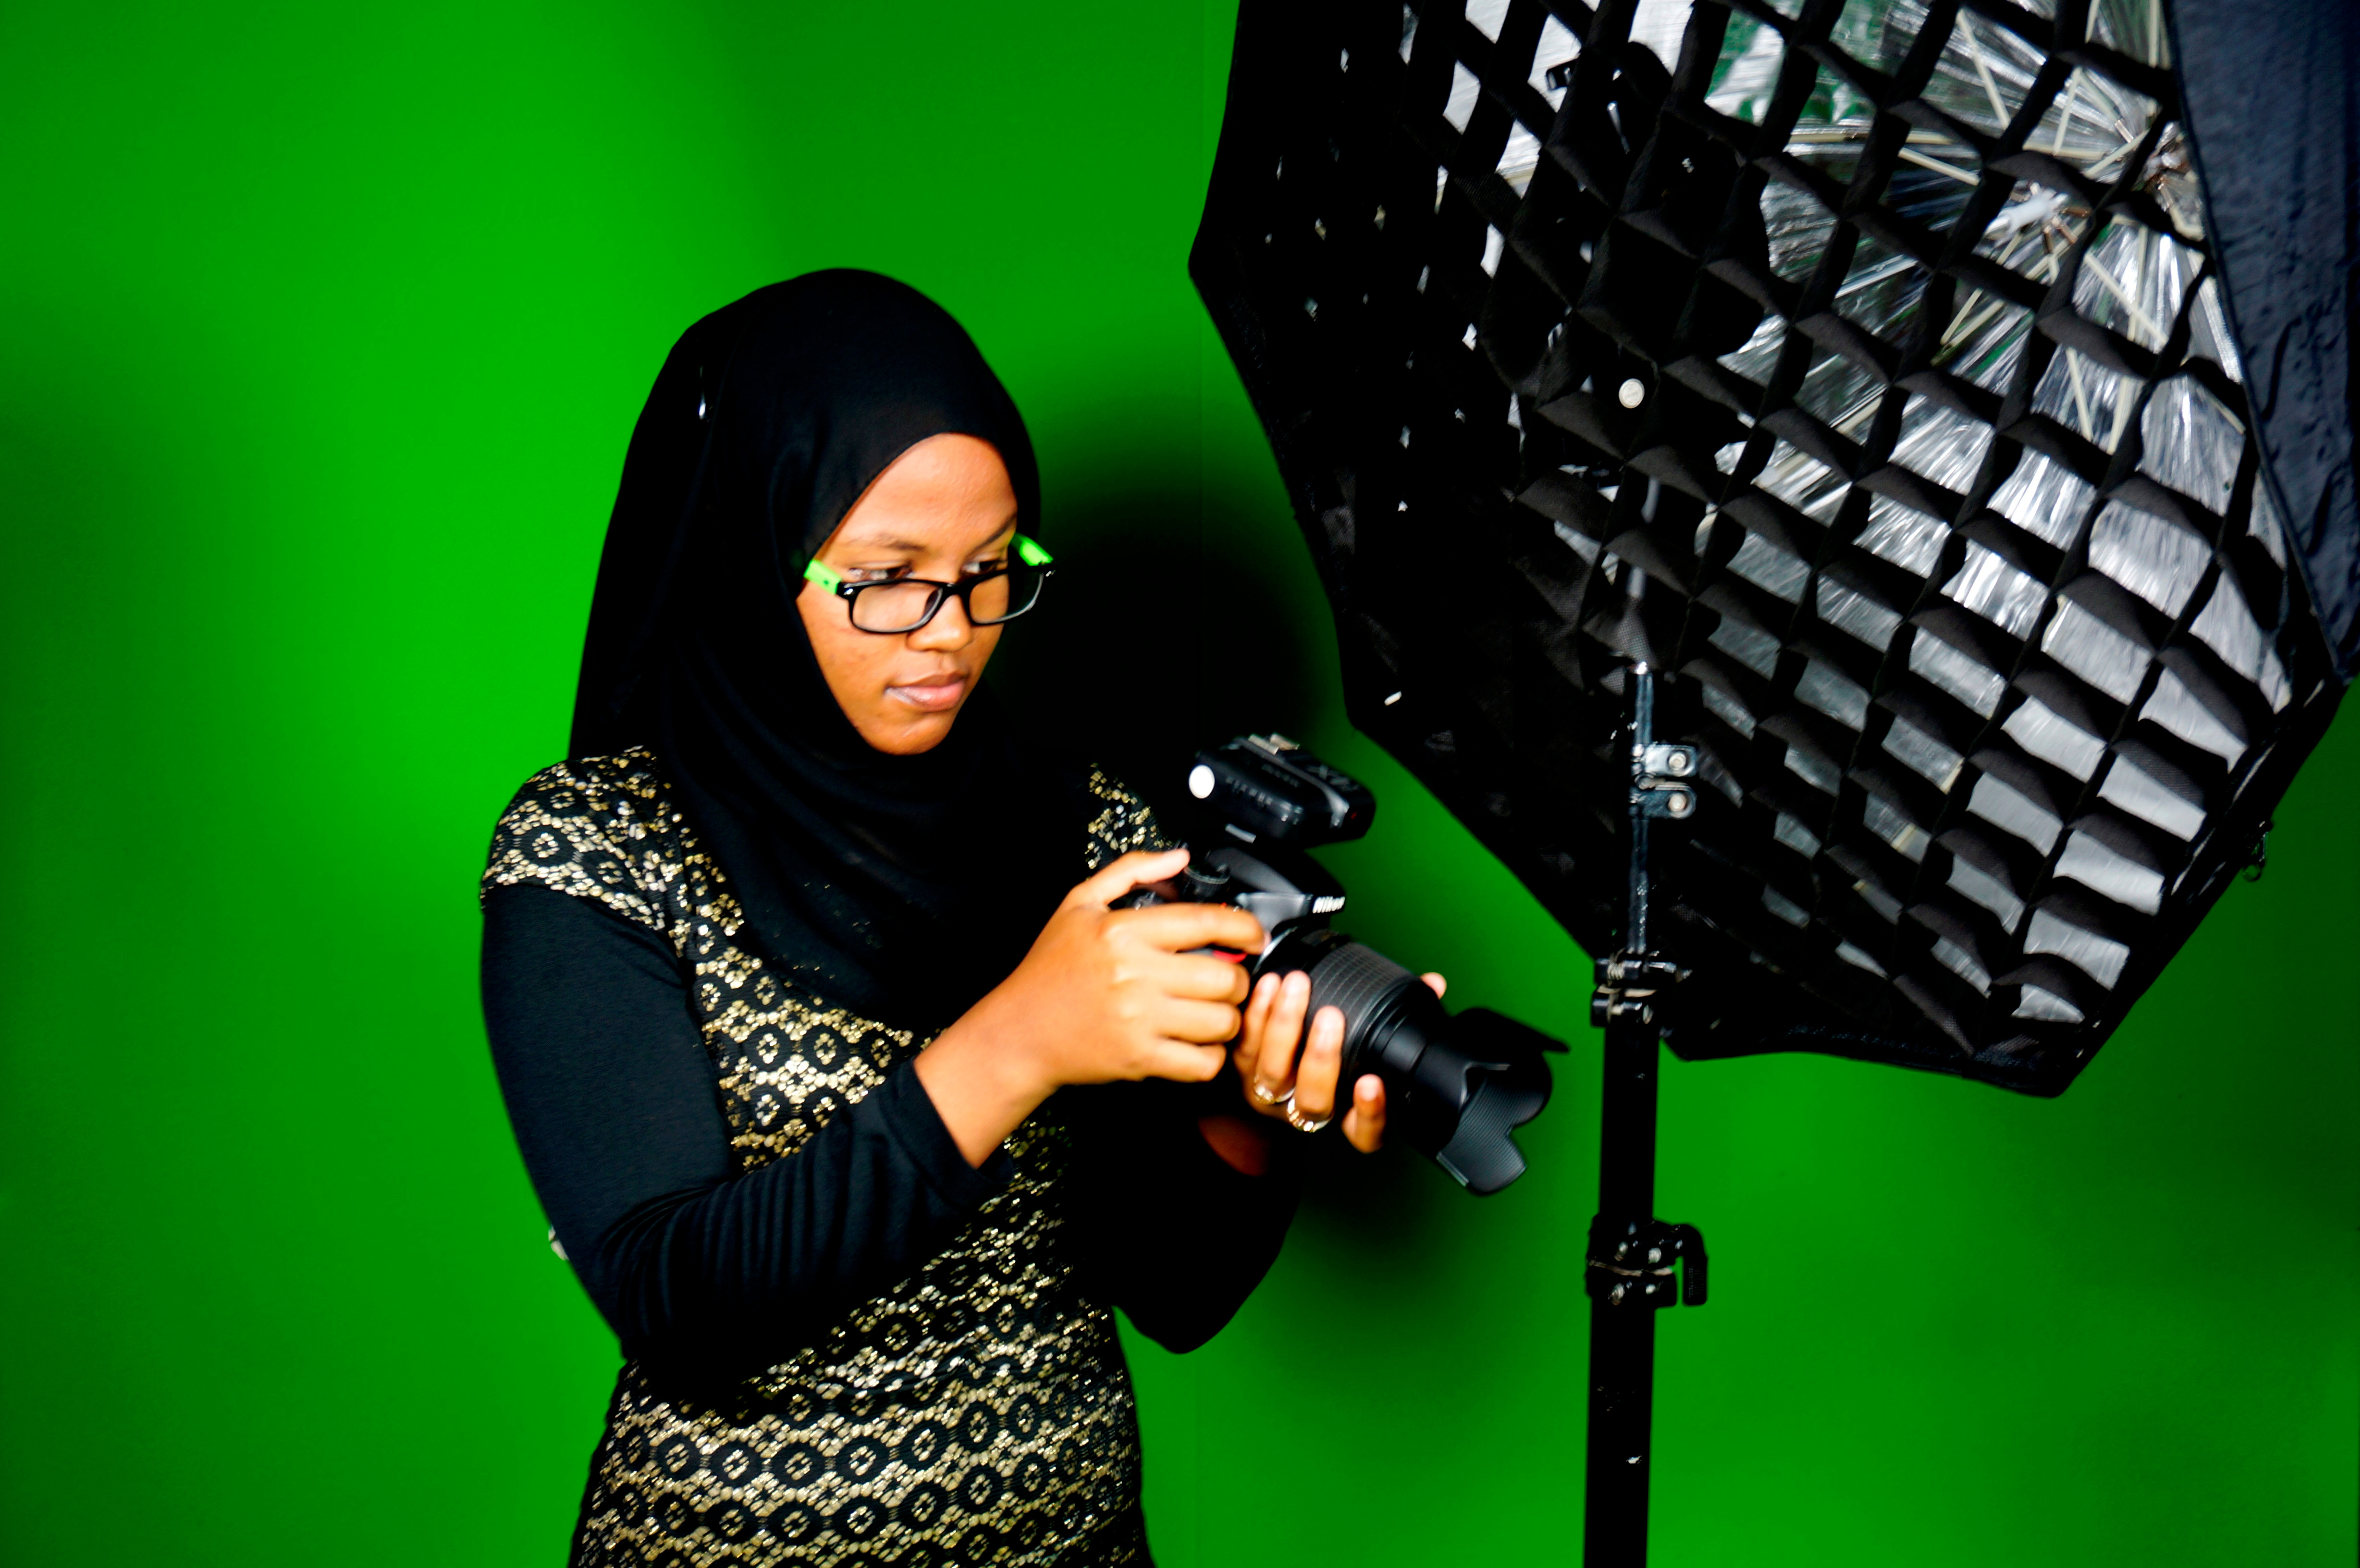 Certificate in Photography